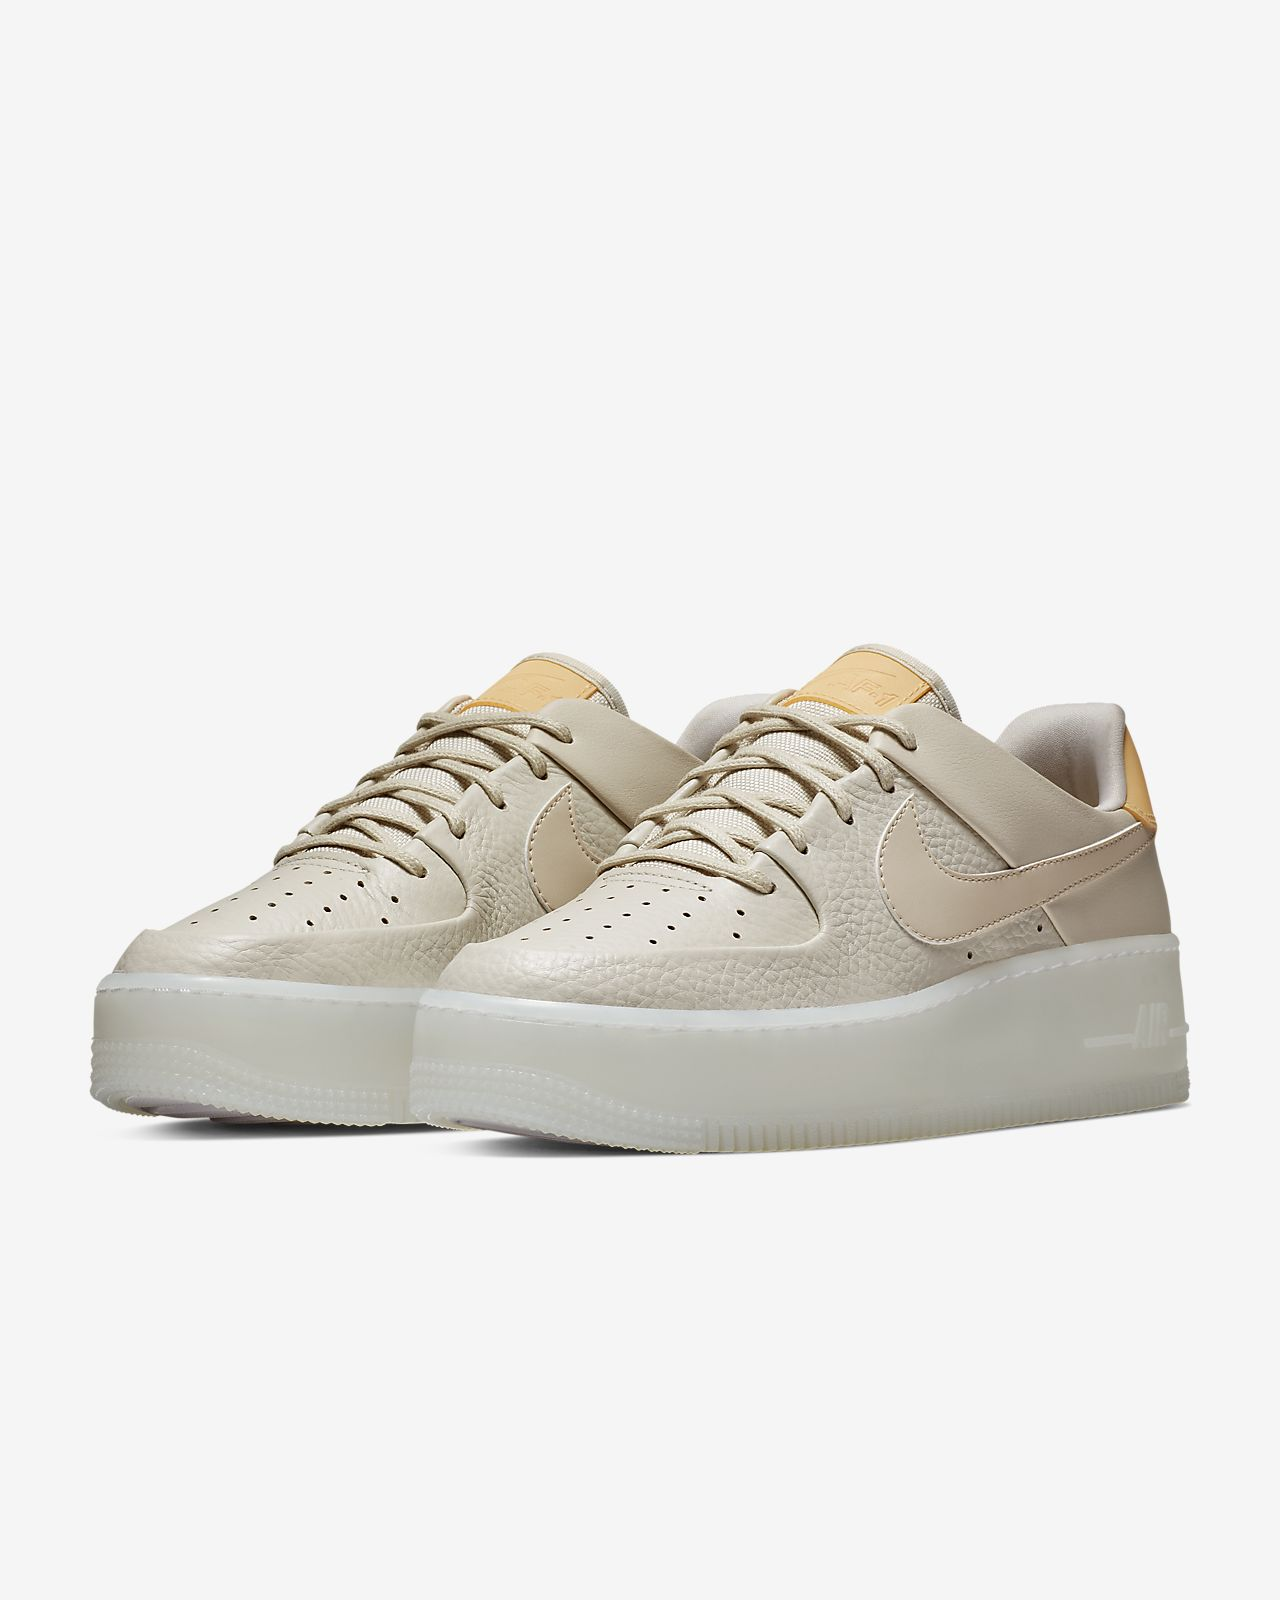 new product 9a78f abe4a ... Nike Air Force 1 Sage Low LX Women s Shoe